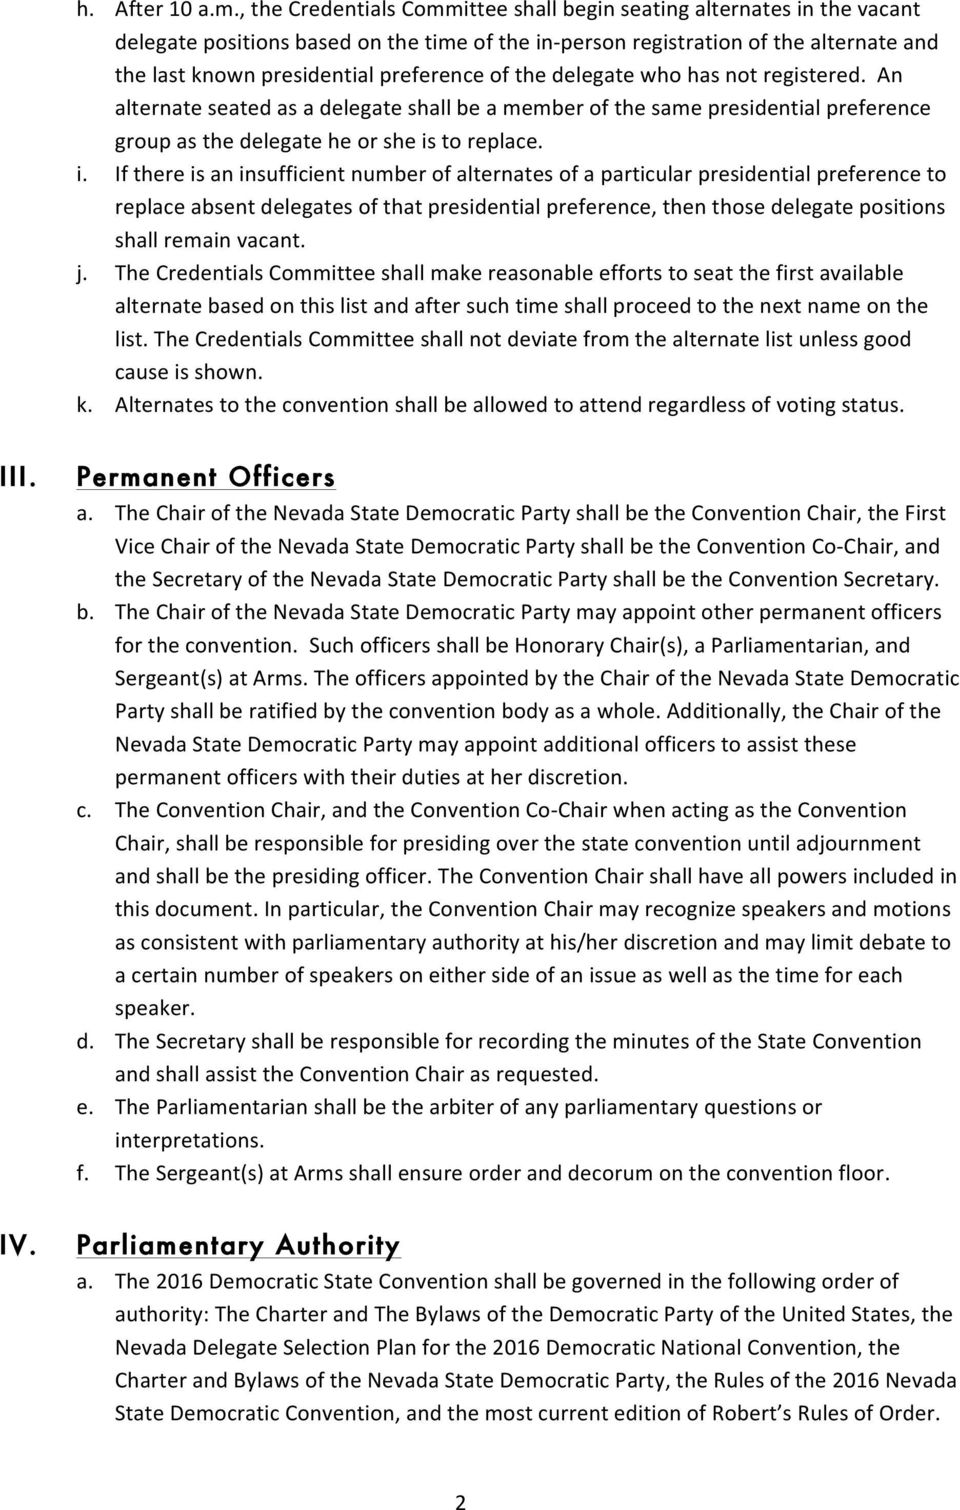 preference of the delegate who has not registered. An alternate seated as a delegate shall be a member of the same presidential preference group as the delegate he or she is